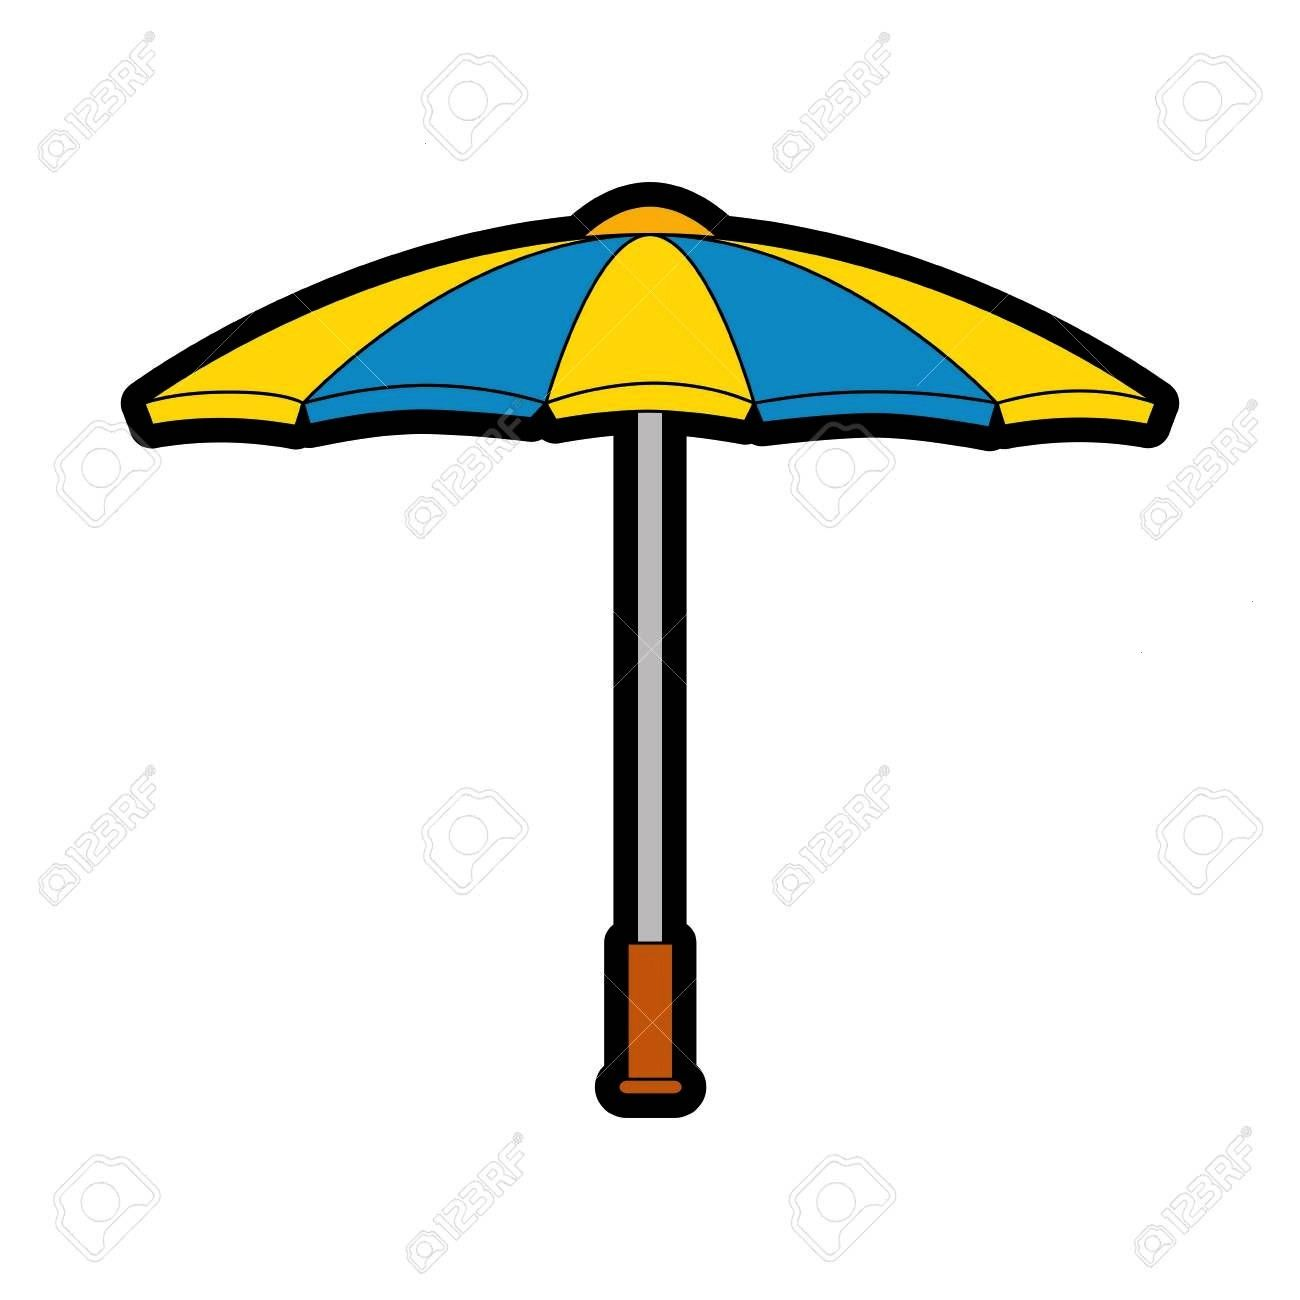 parasol icon over white background vector illustration Illustration A parasol icon over white background vector illustration Illustration  Infographic The Colors From You...